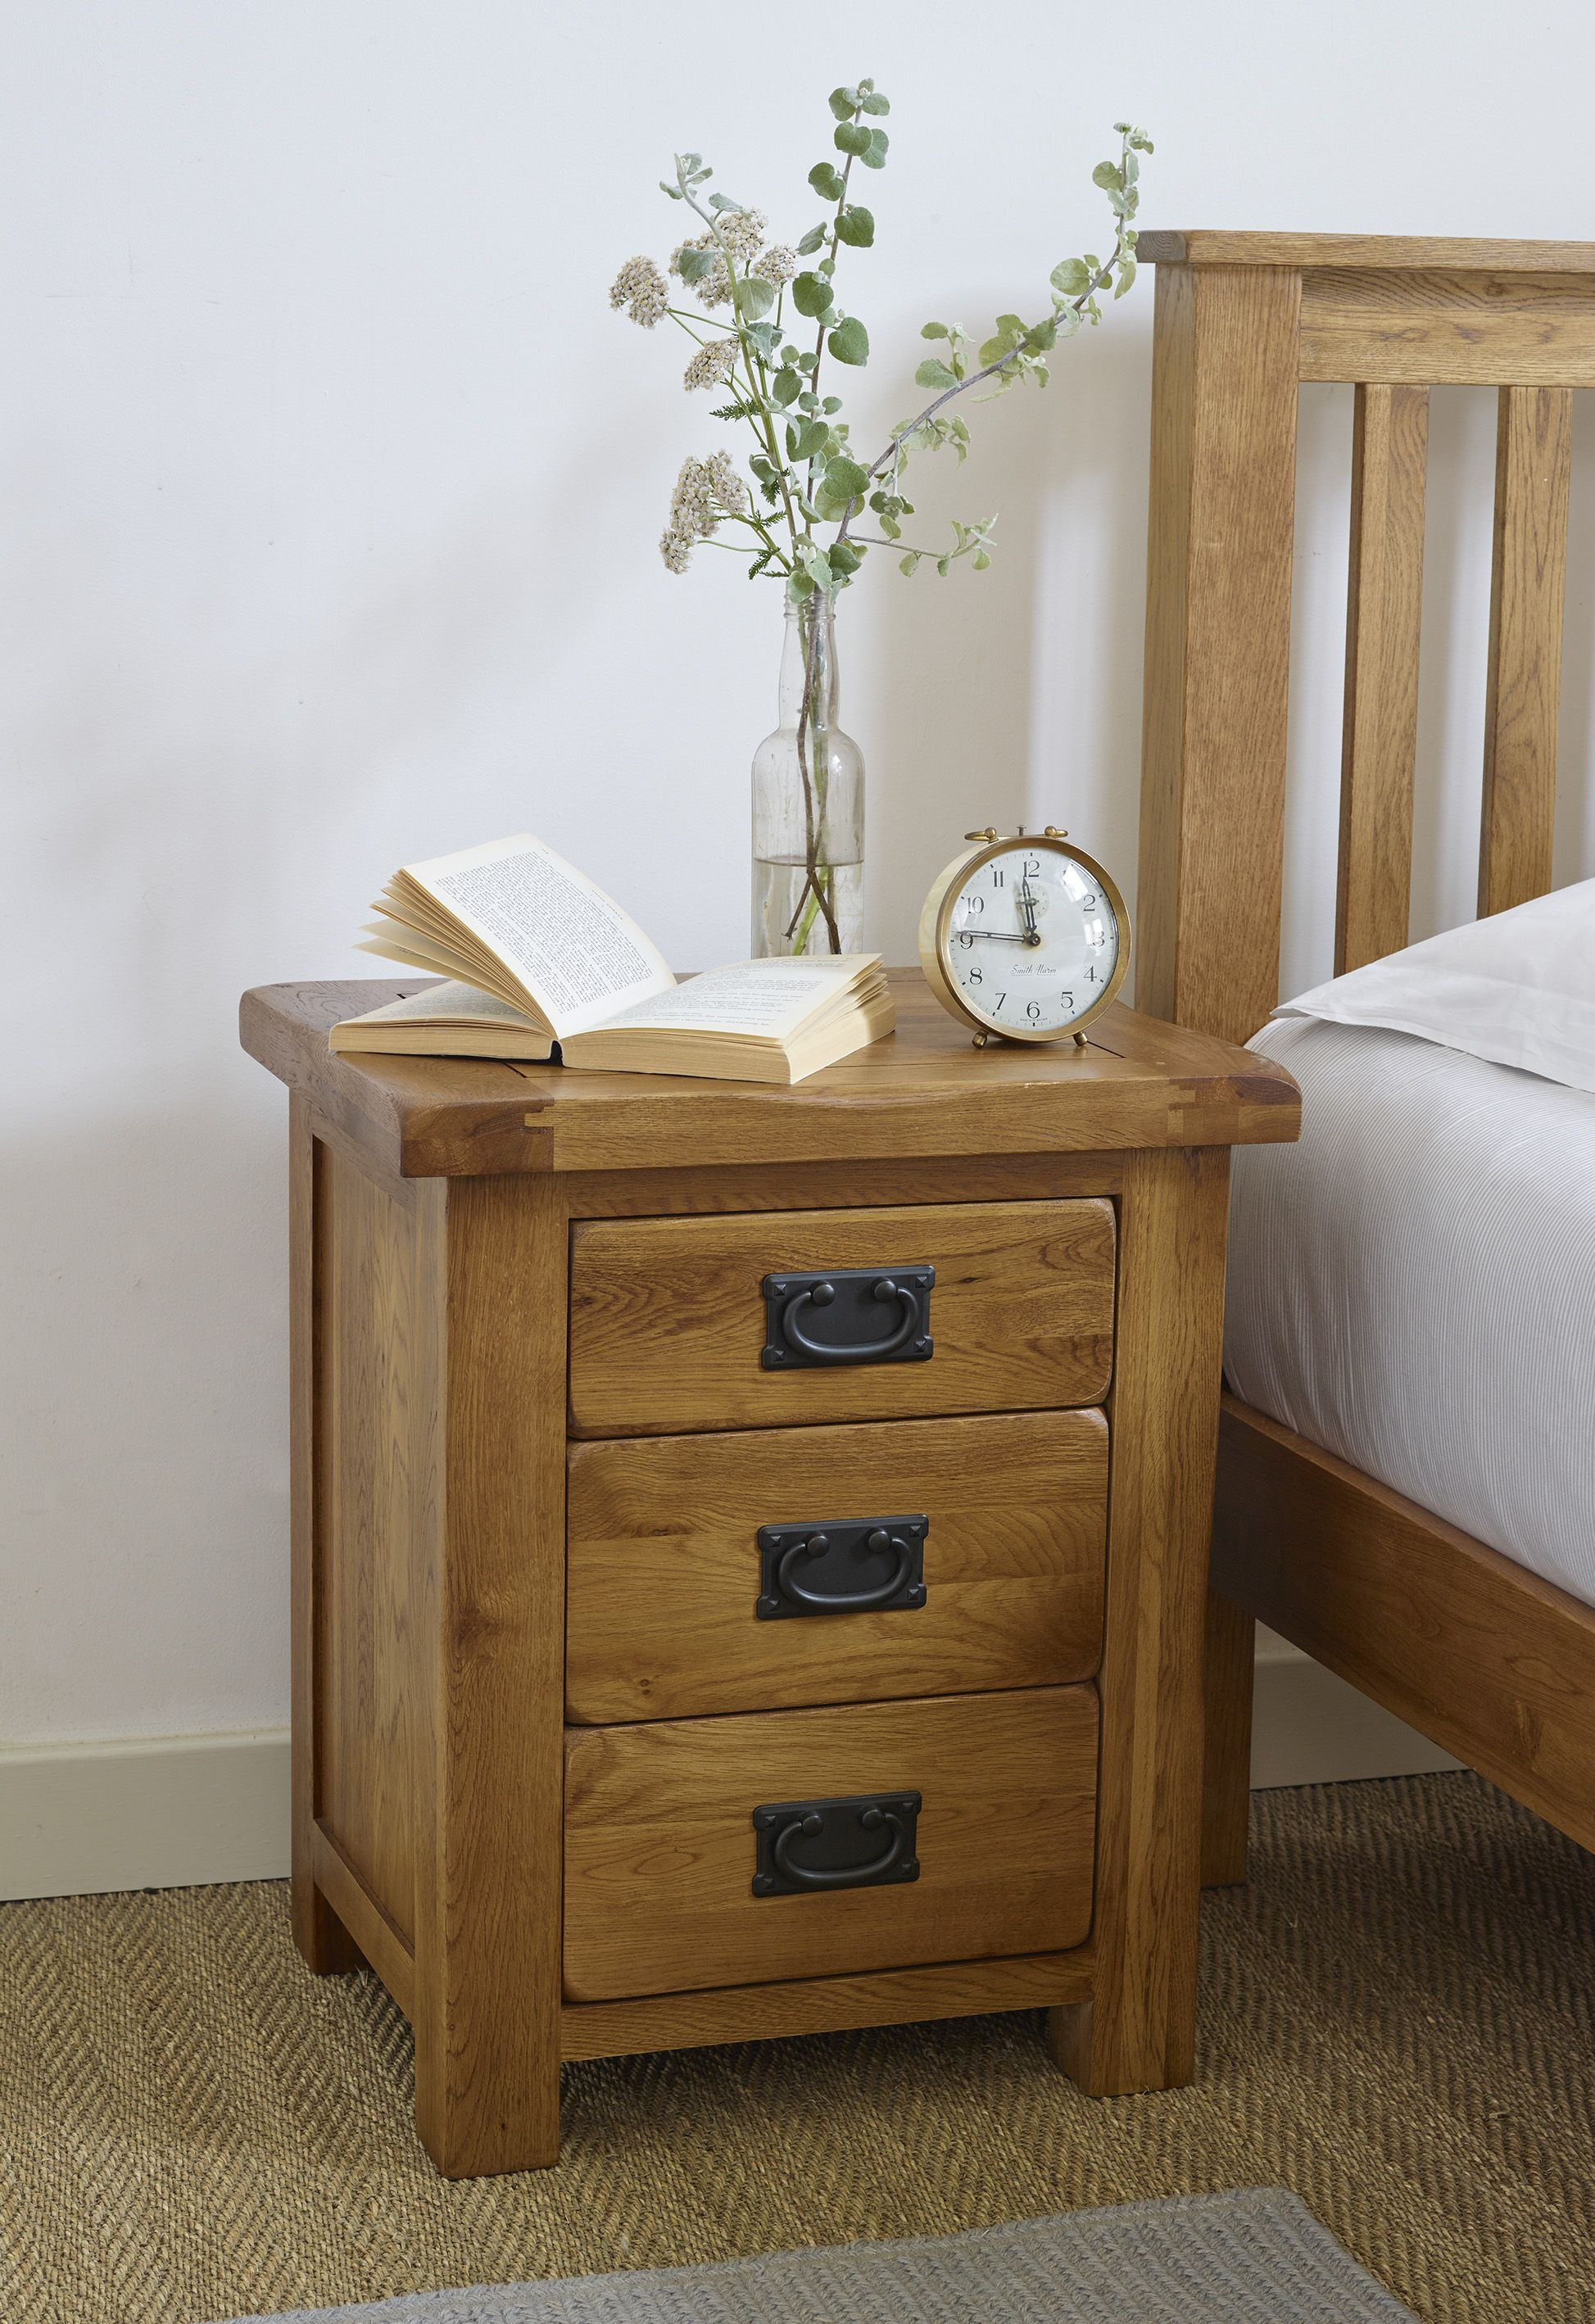 The Original Rustic Solid Oak Nightstand Is Both An Essential Bedroom Item  And A Beautifully Crafted Piece Of Classic Oak Furniture.